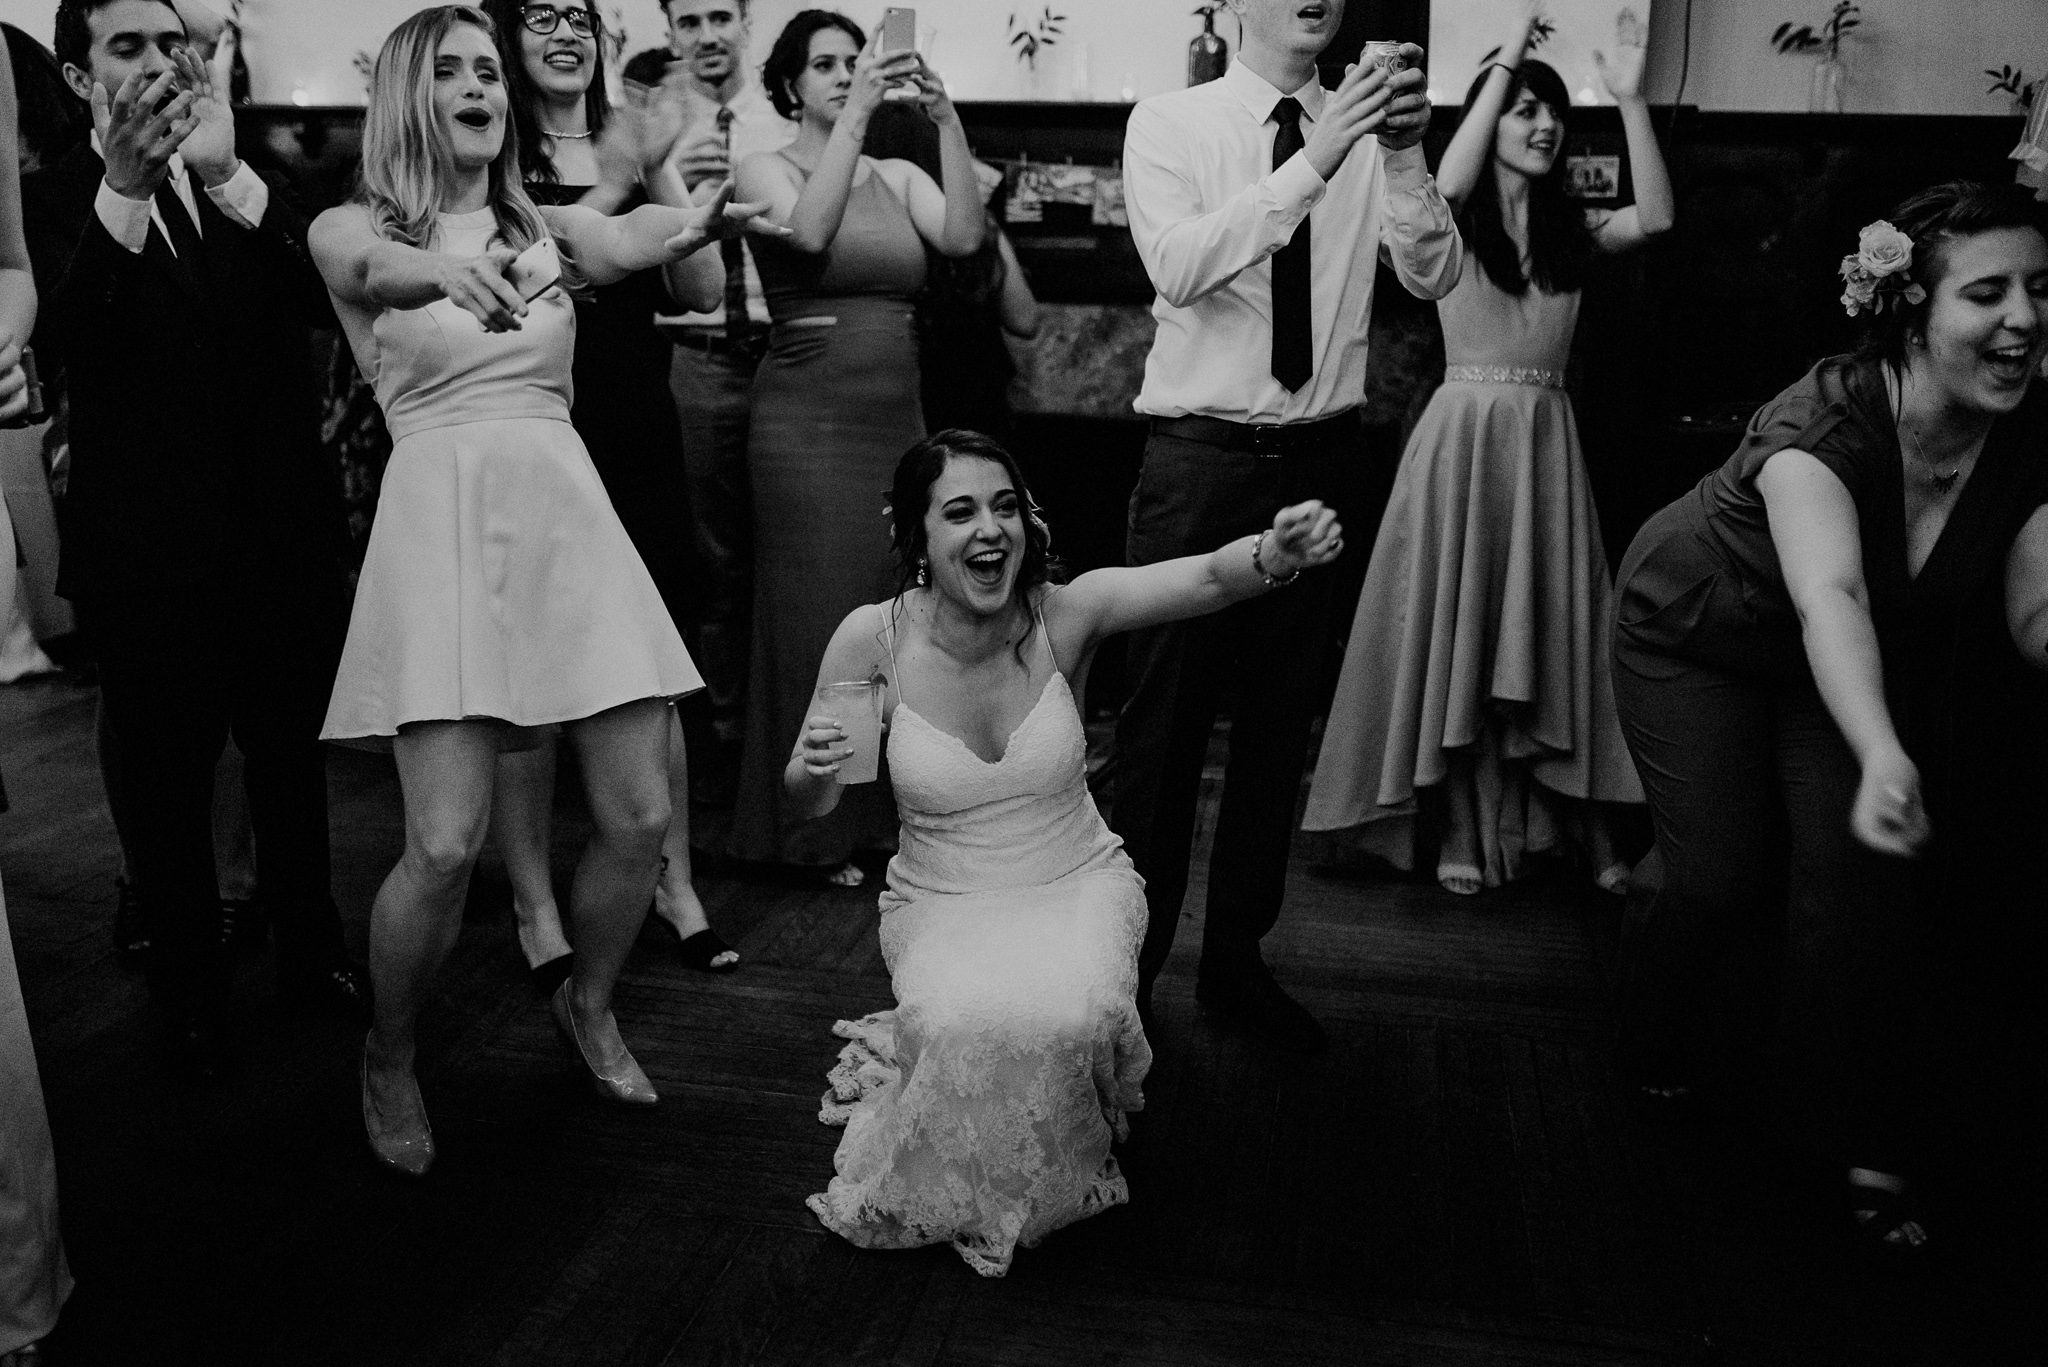 brooklyn-society-wedding-55.jpg